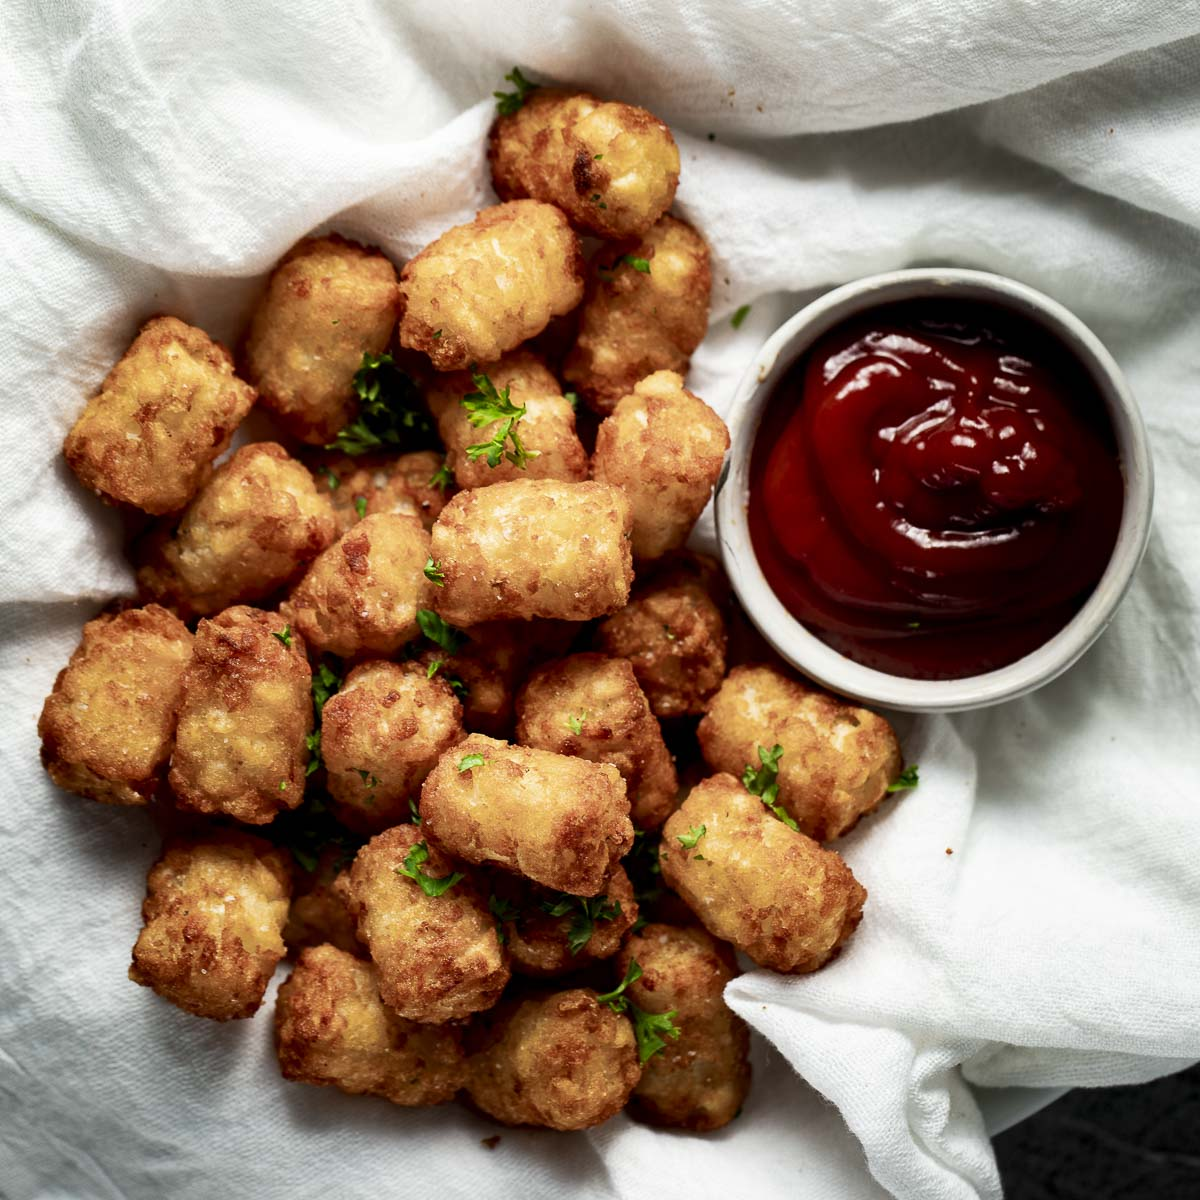 Air fryer tater tots beside a serving of ketchup.